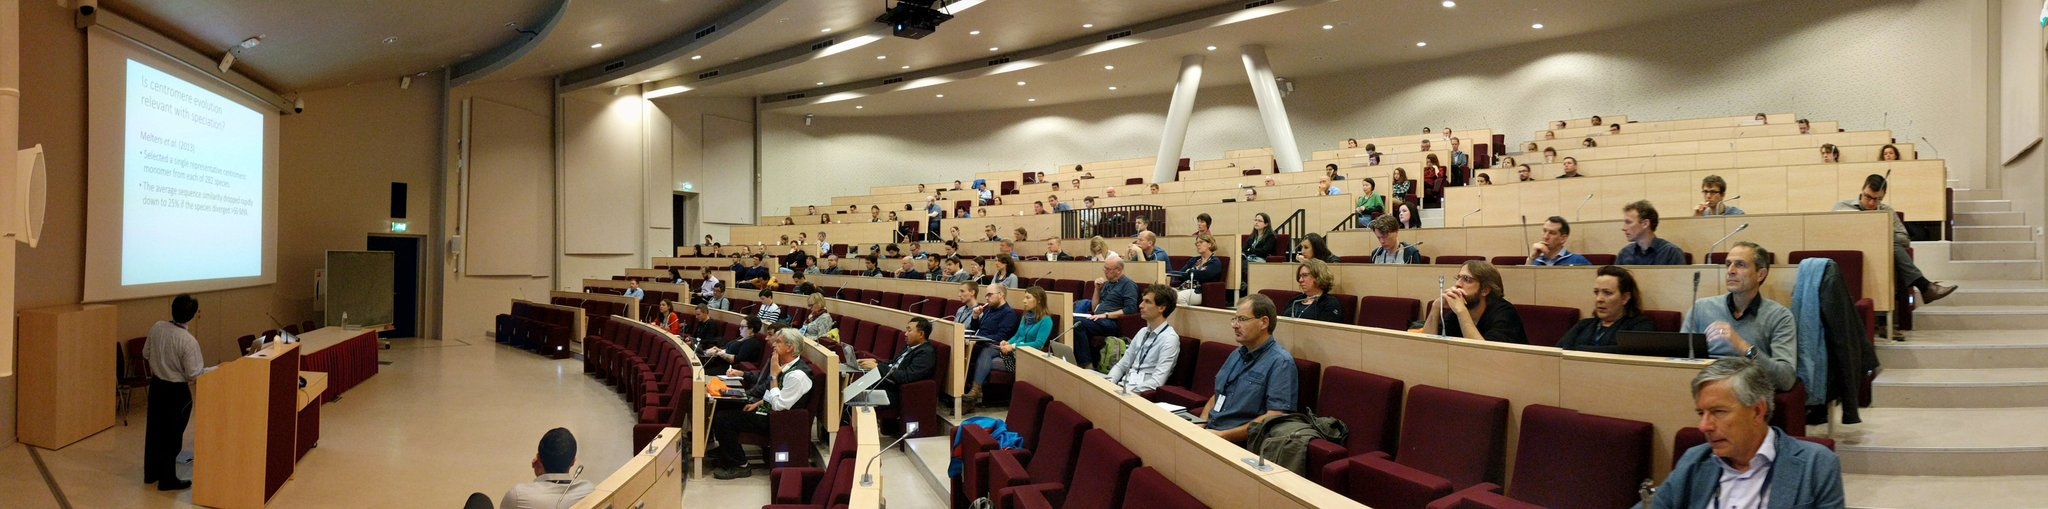 Early morning, still some missing, but already packed #SMRTLeiden https://t.co/6OBf2gL5uW